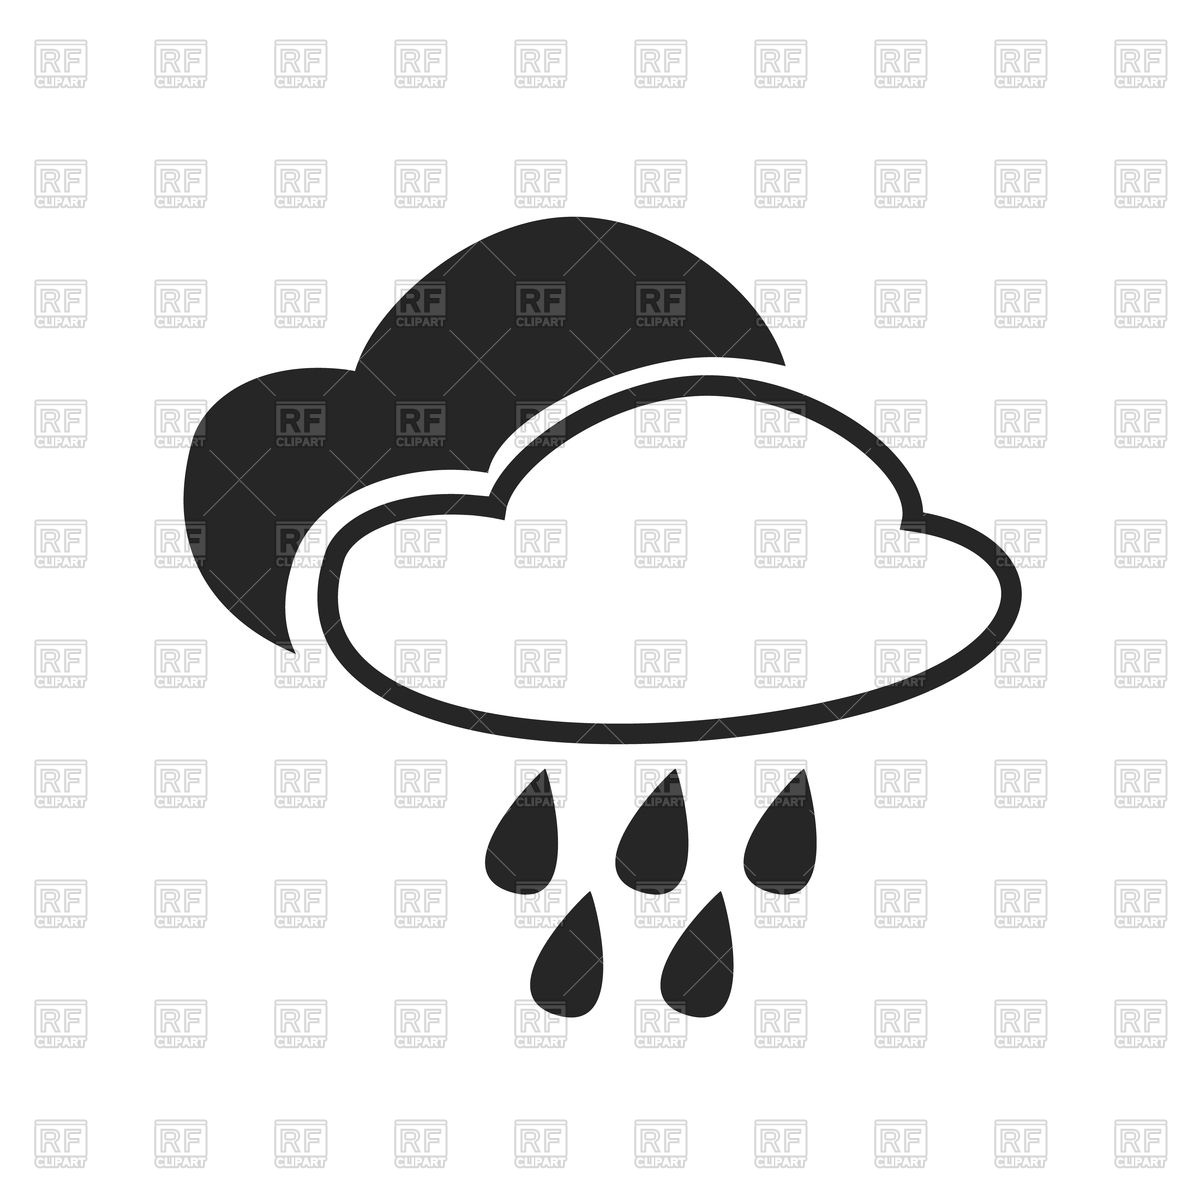 Continuous rainfall clipart #1